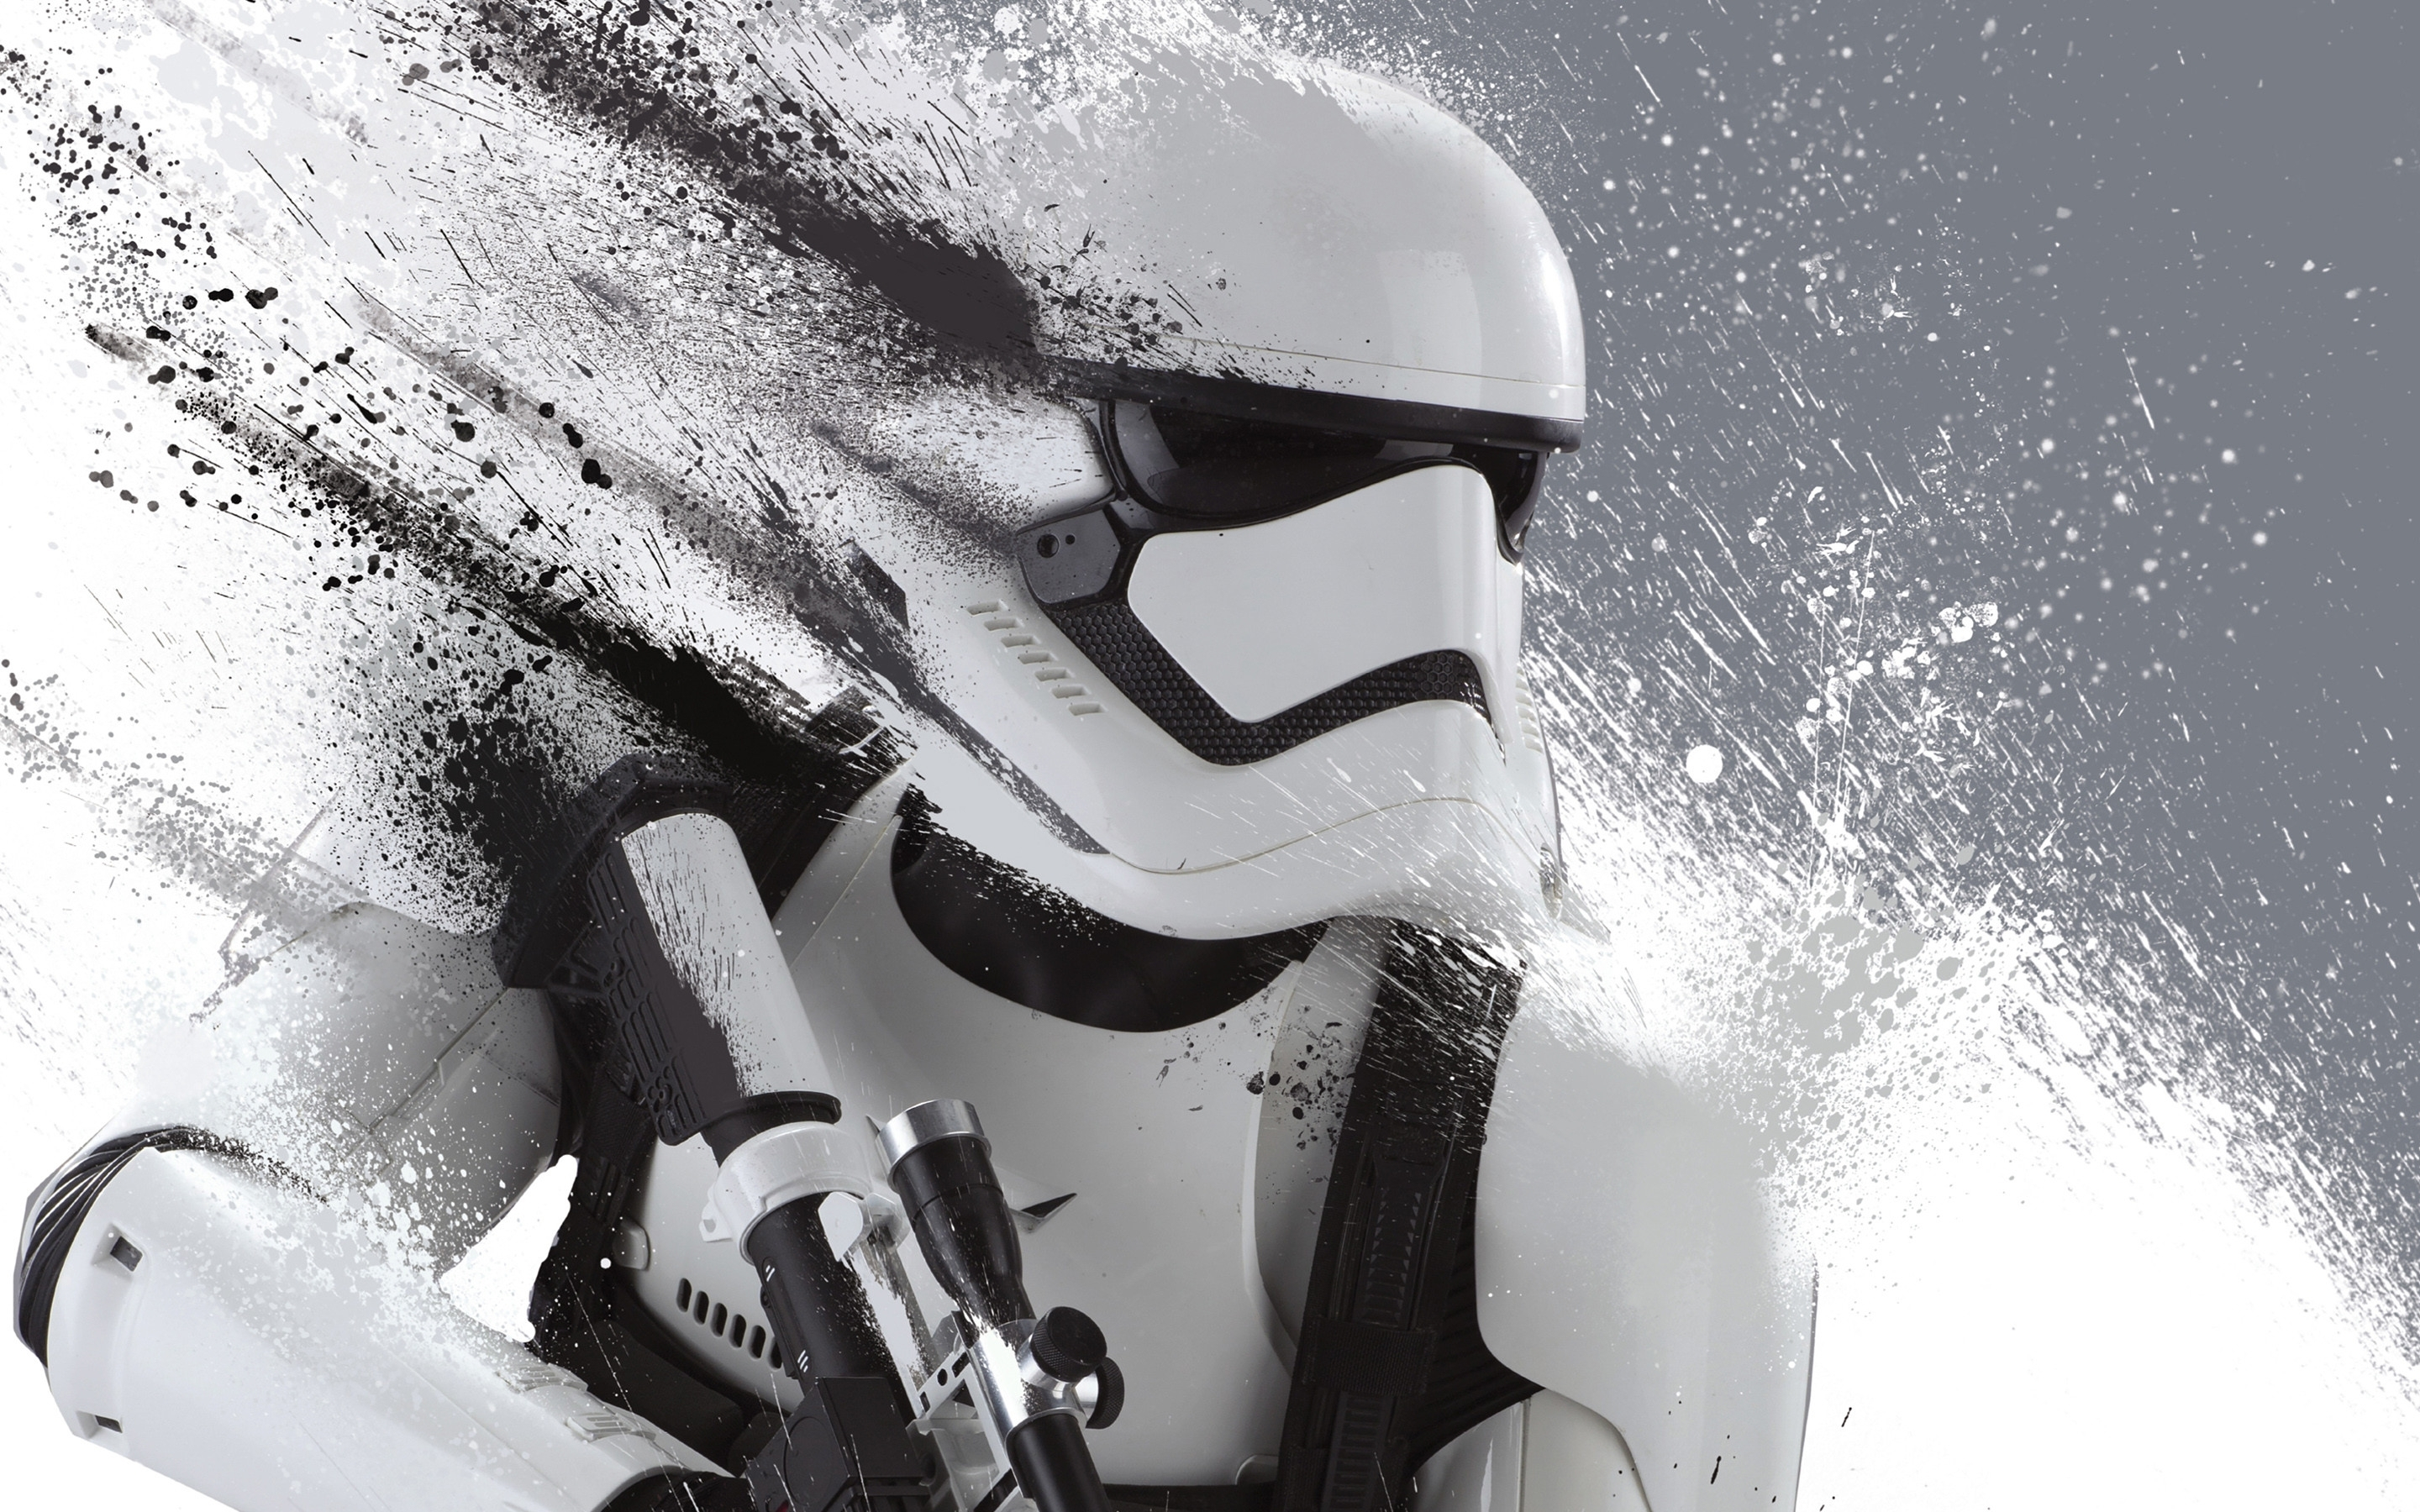 10 Best Star Wars First Order Stormtrooper Wallpaper FULL HD 1920×1080 For PC Background